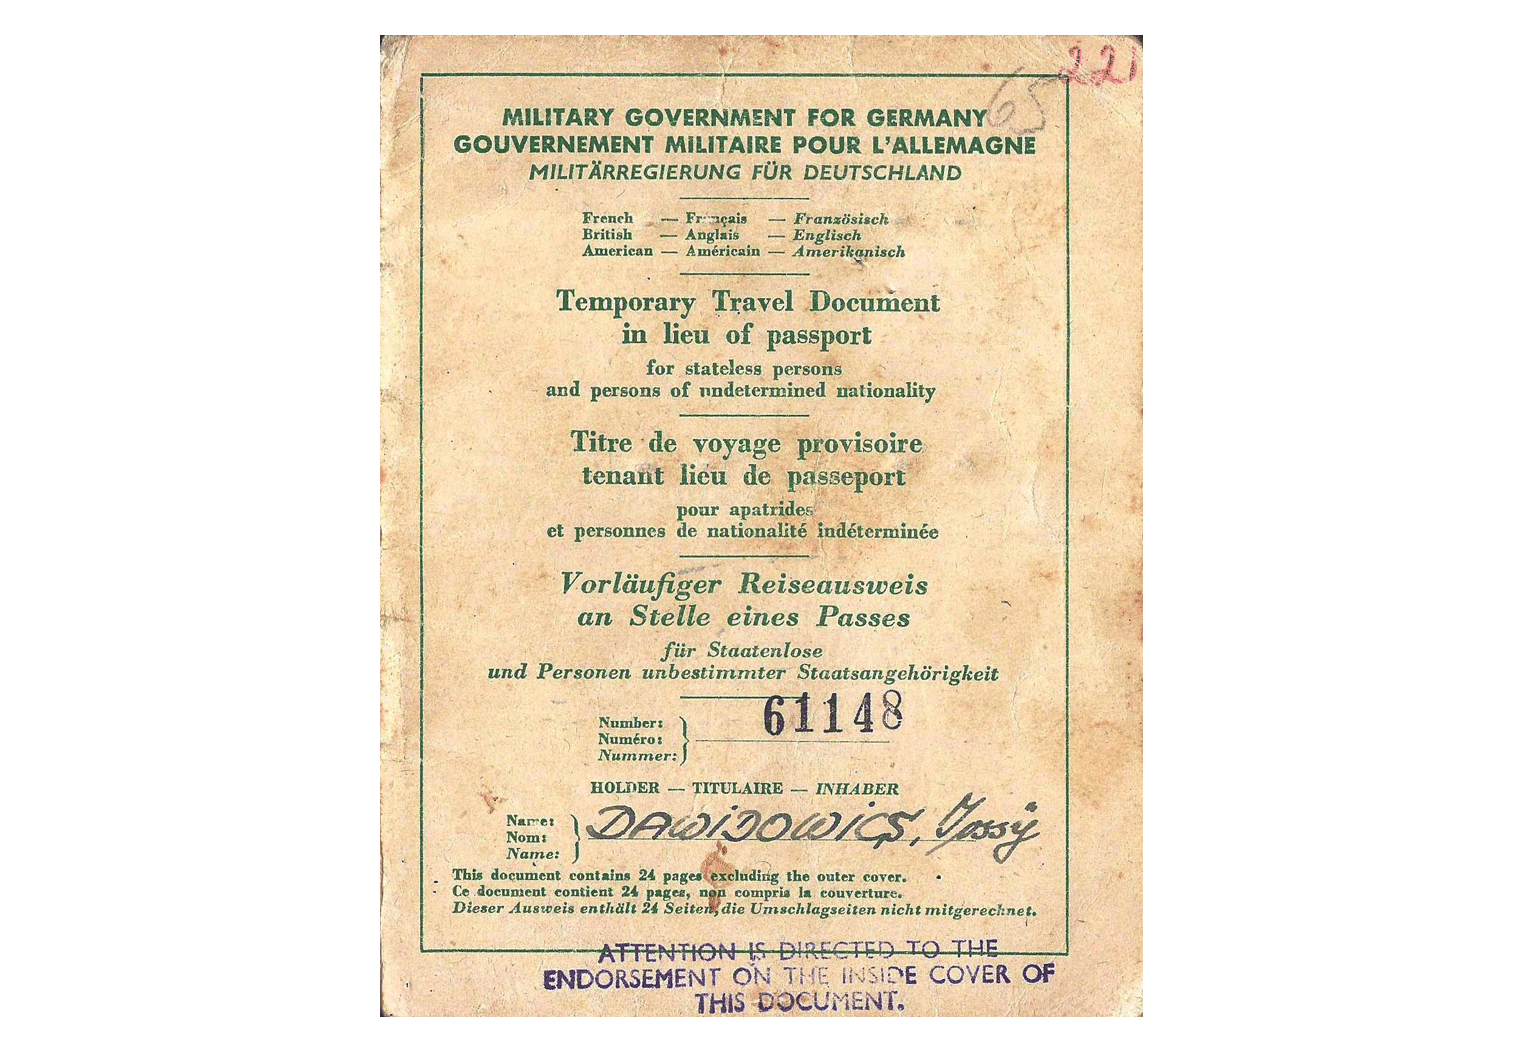 Allied Military Government travel document.